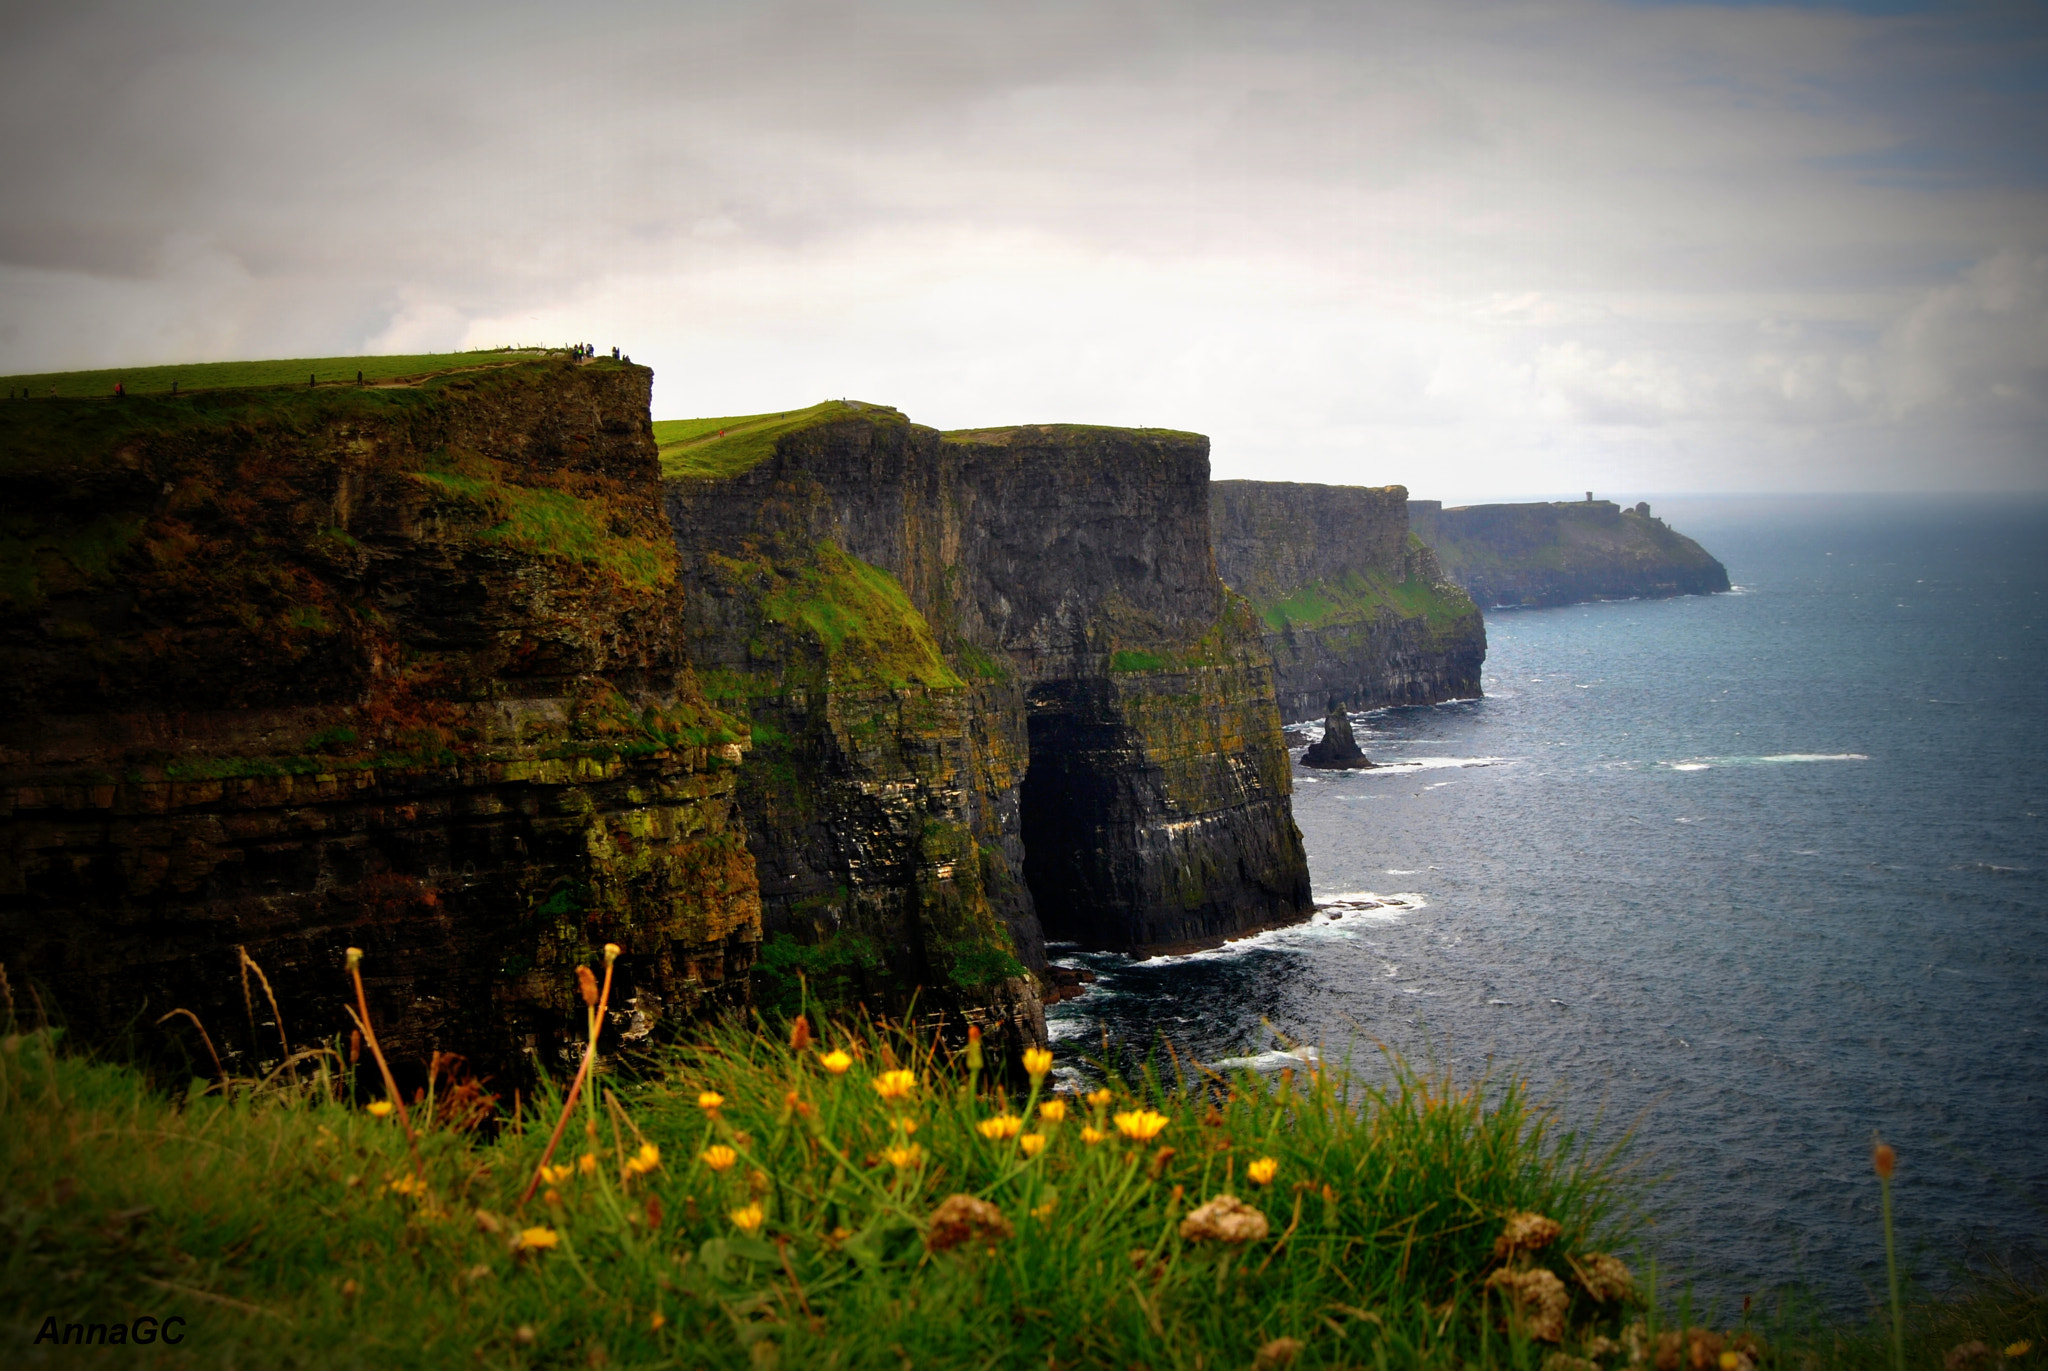 Photograph Amazing experience at Cliffs of Moher by Anna Garcia on 500px